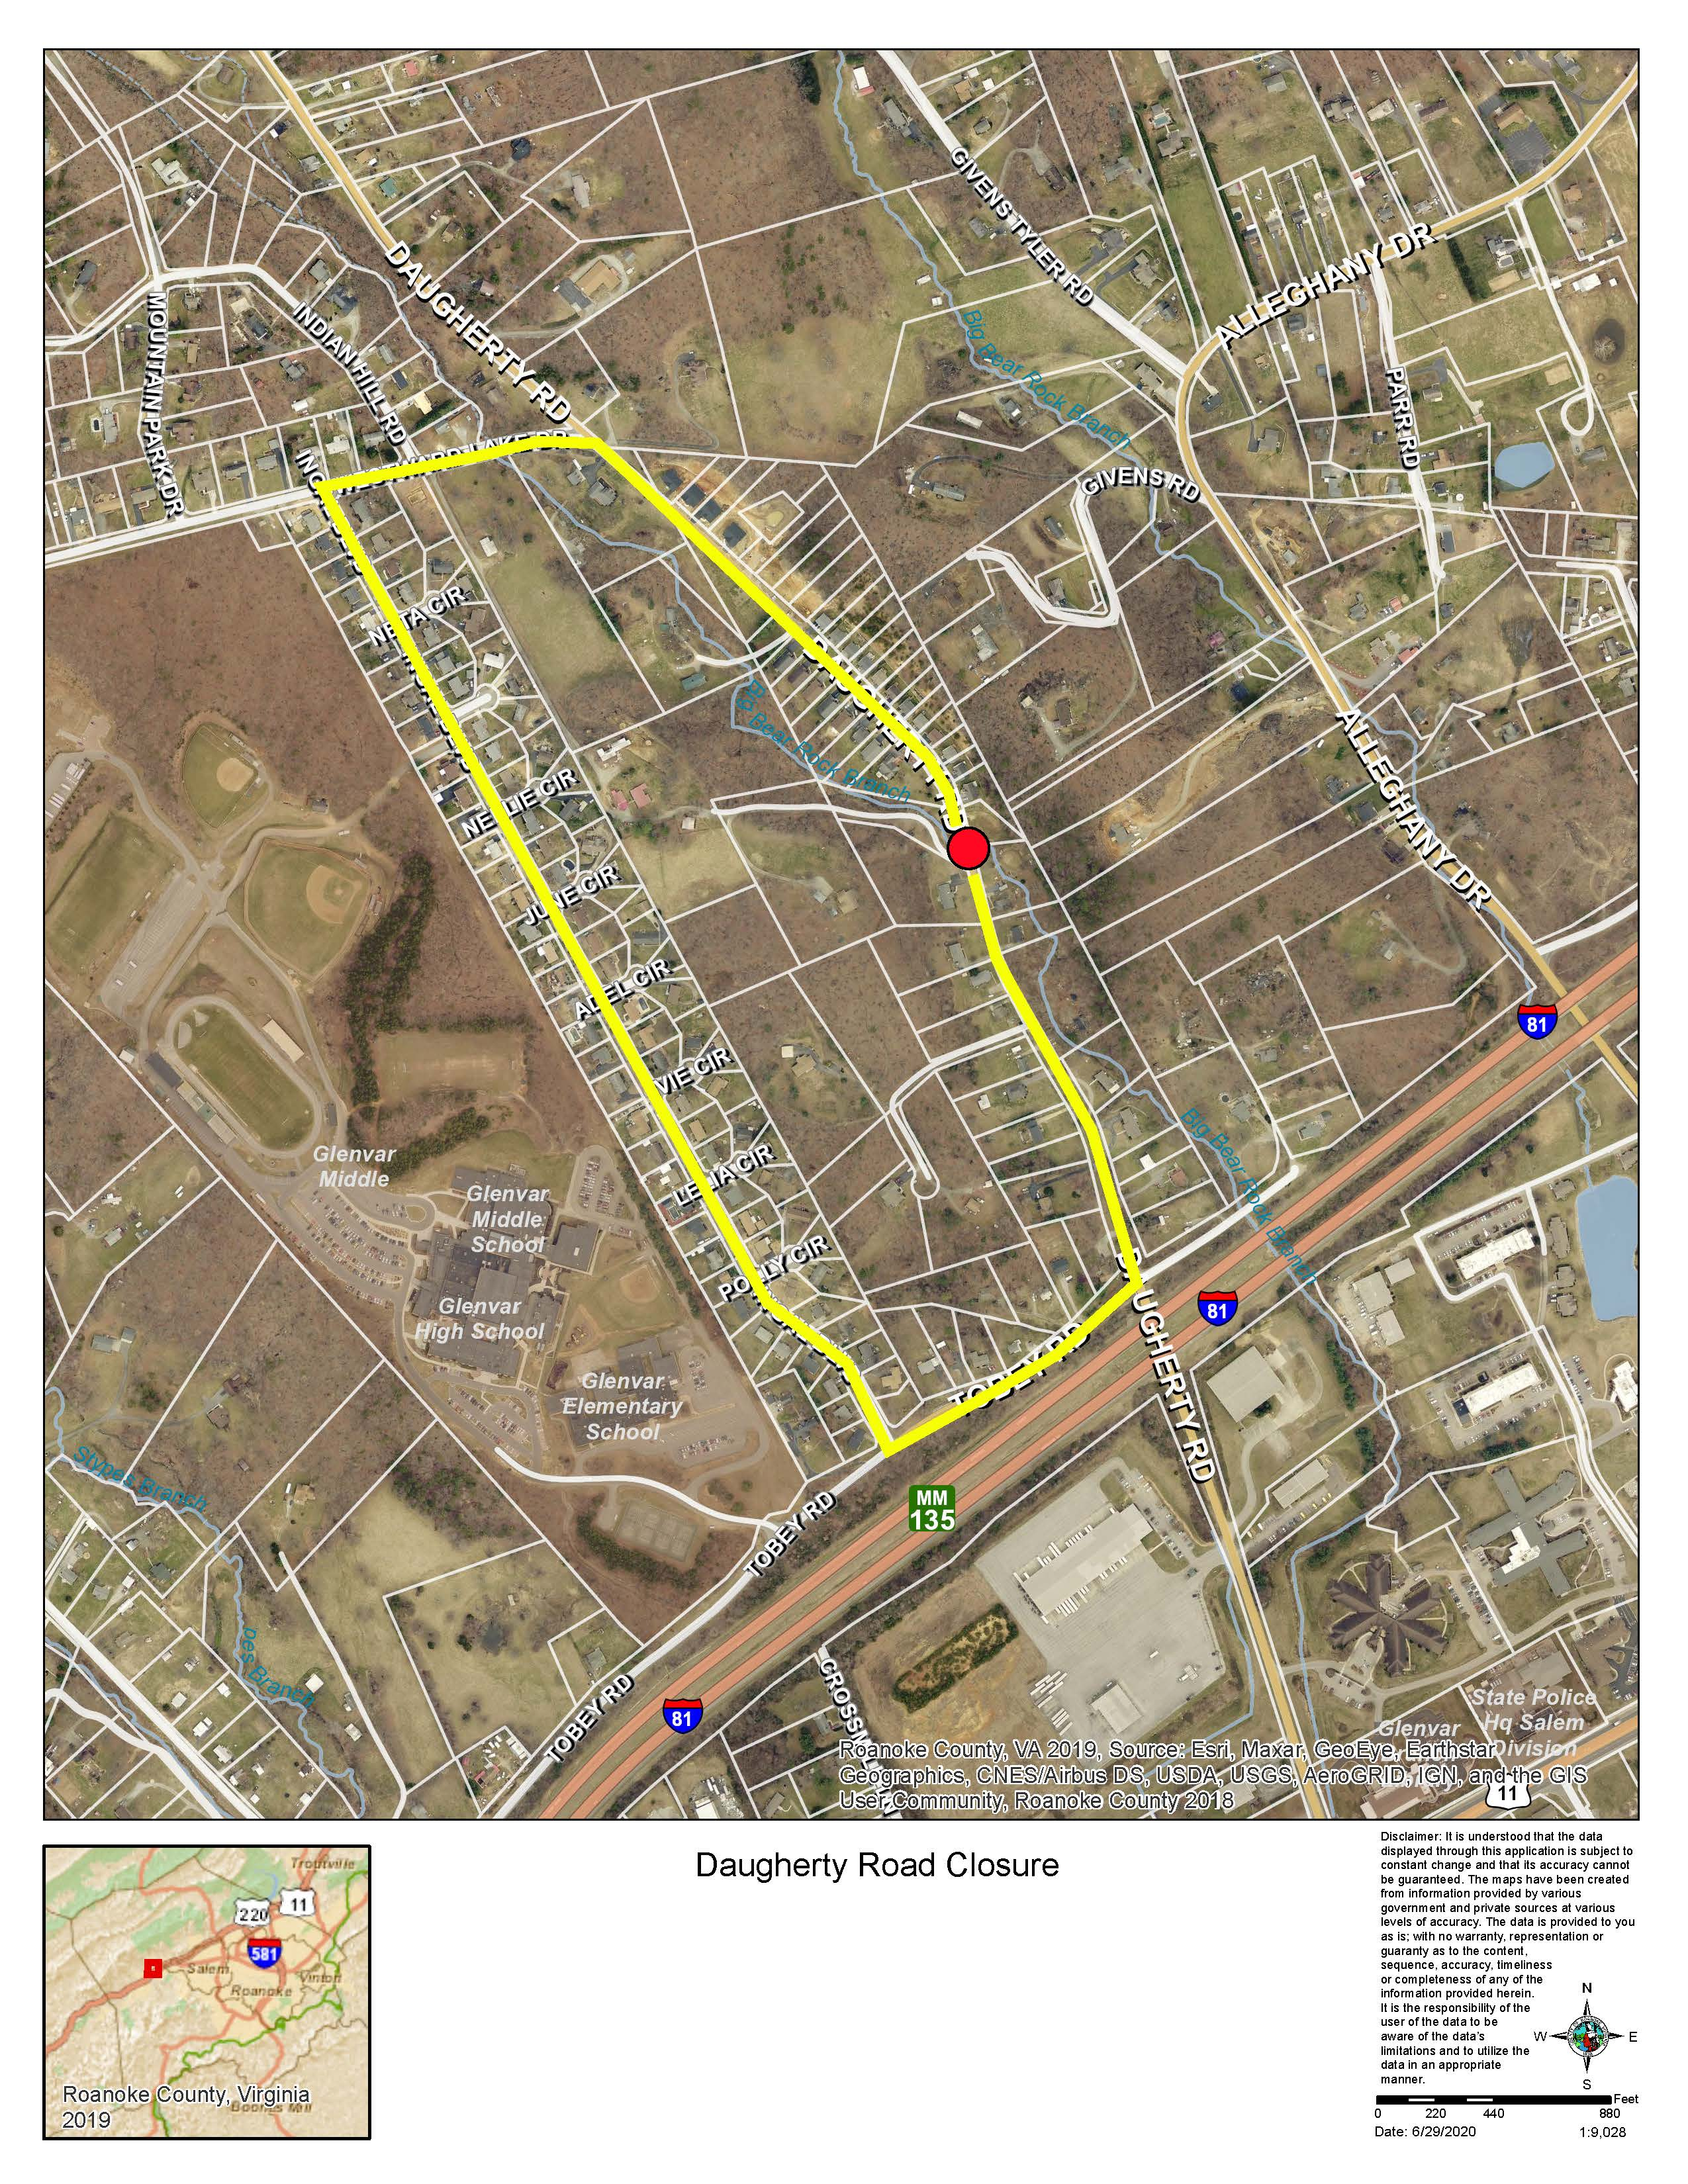 Daugherty Road Closure Map